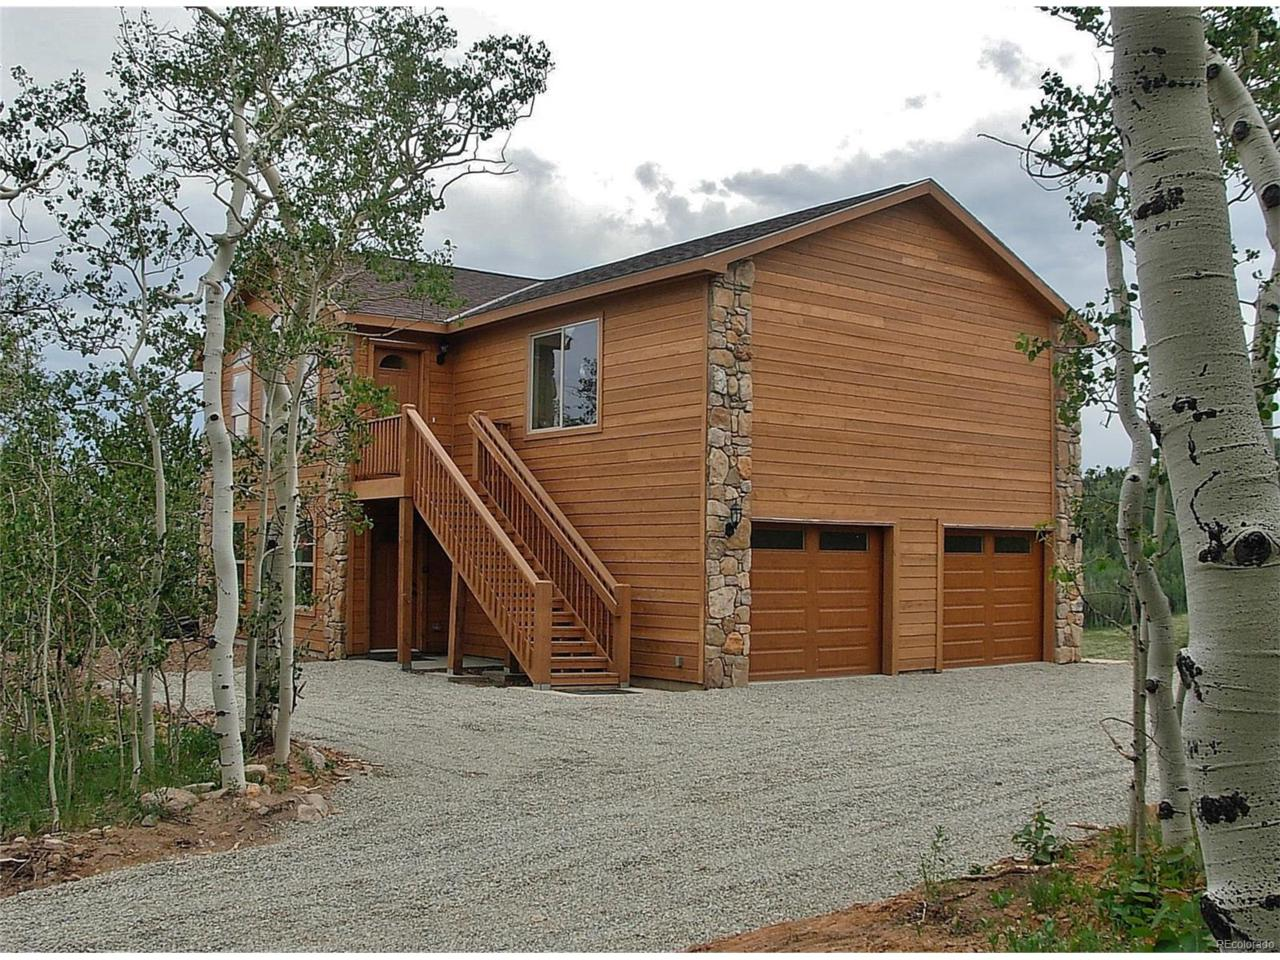 2545 High Creek Road, Fairplay, CO 80440 (MLS #2373548) :: 8z Real Estate